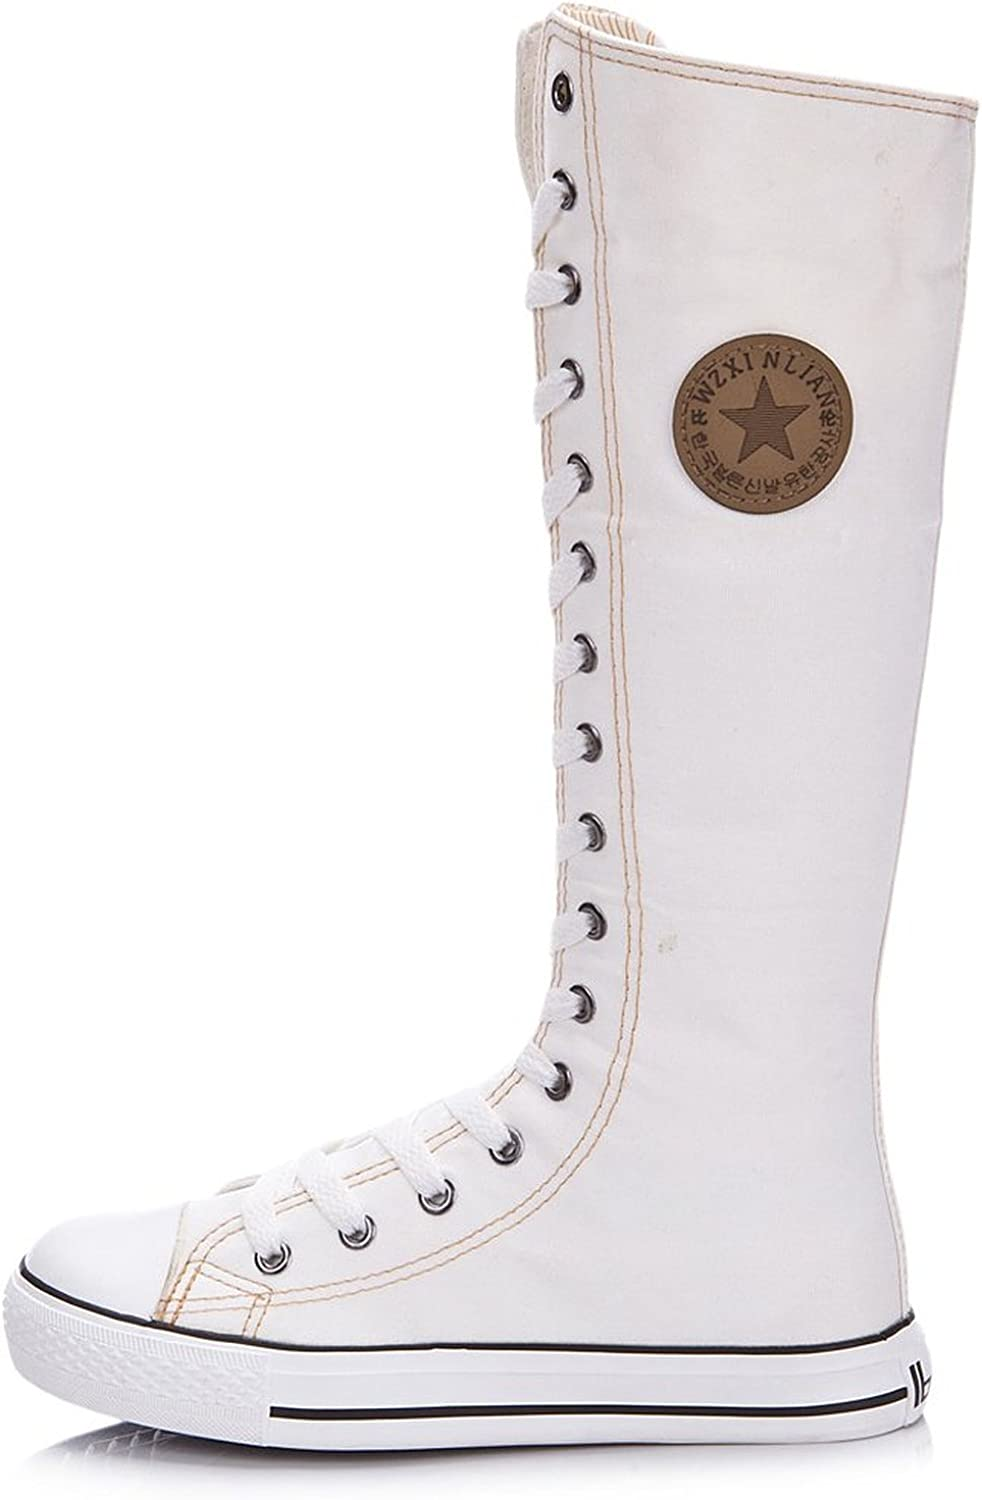 Girls' Knee High Punk Dancing Canvas Boot White, USA 5 Euro 35